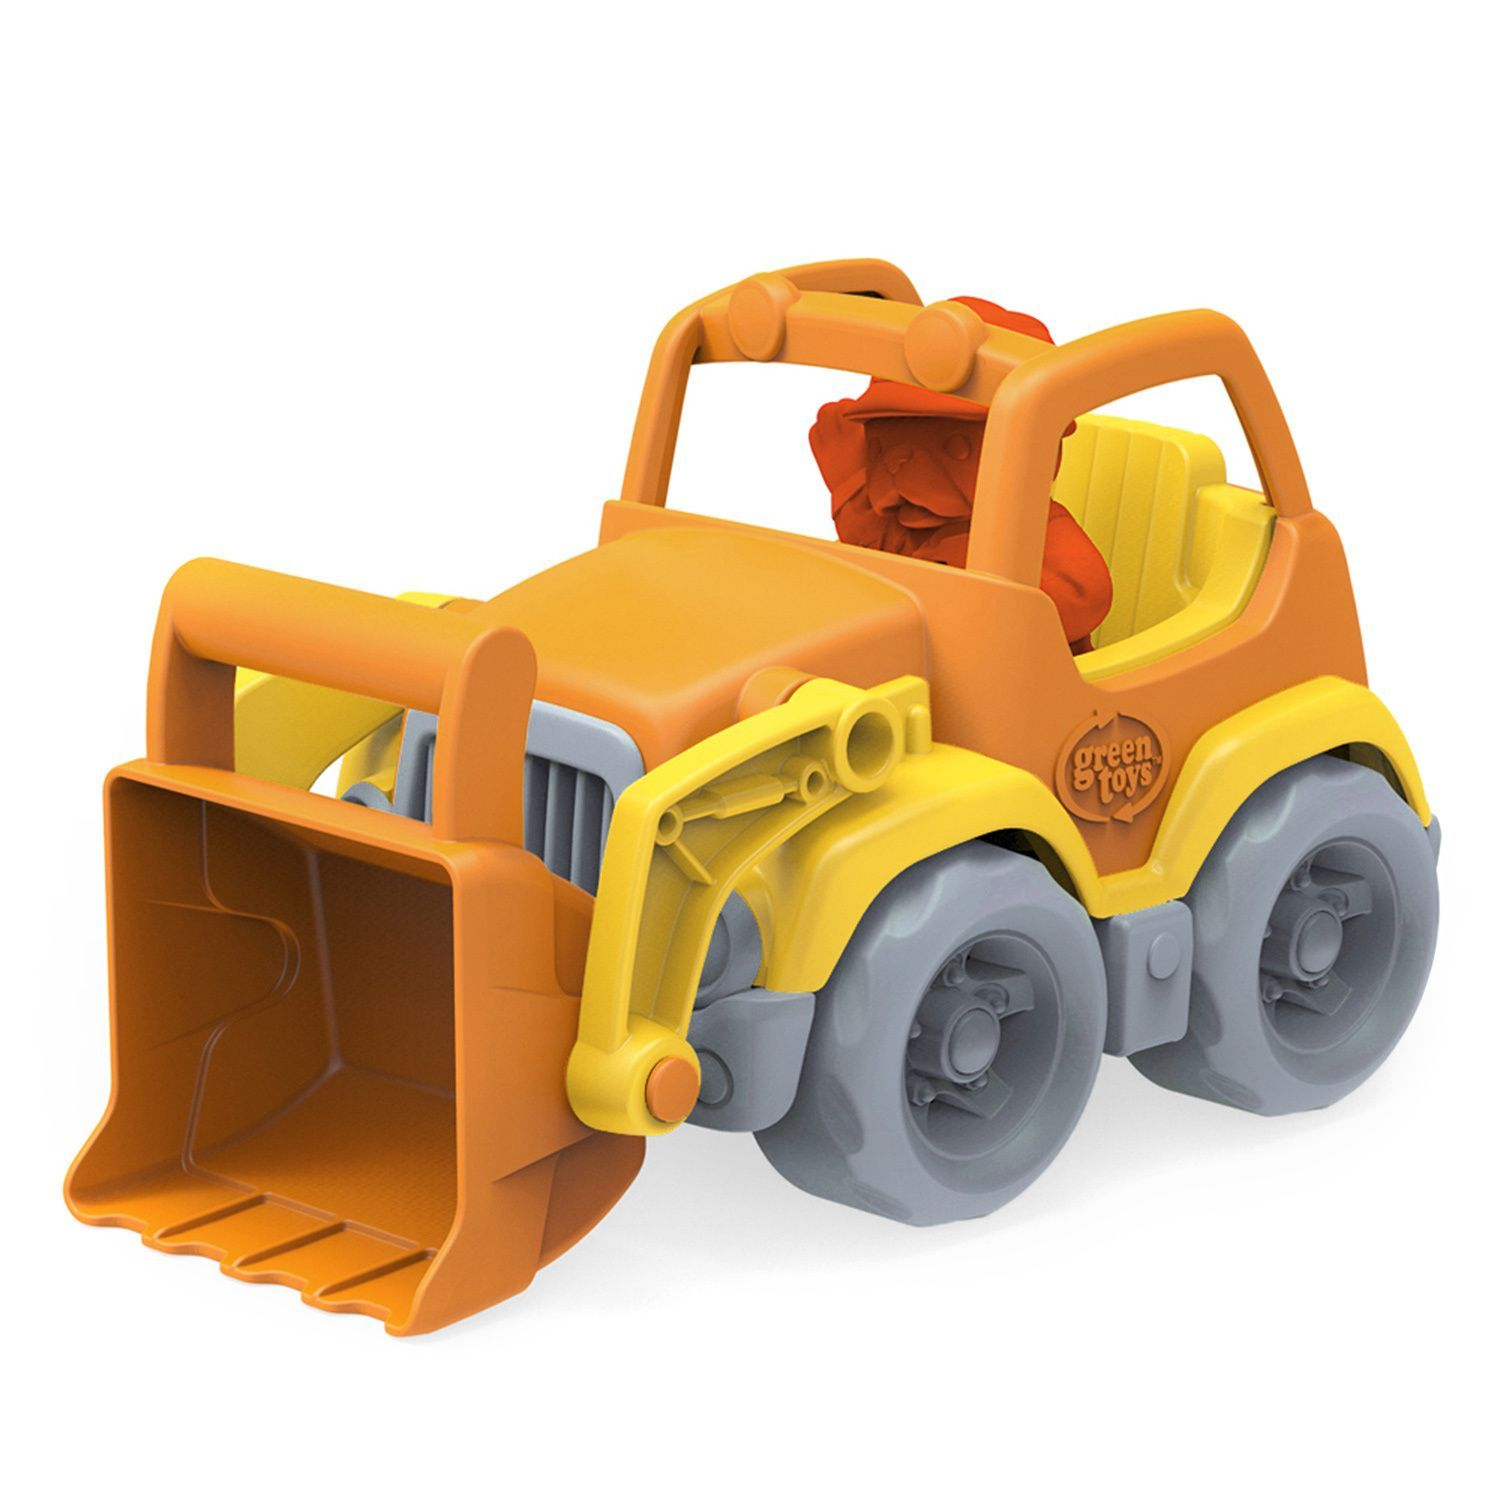 Green Toys Scooper Construction Truck Toy